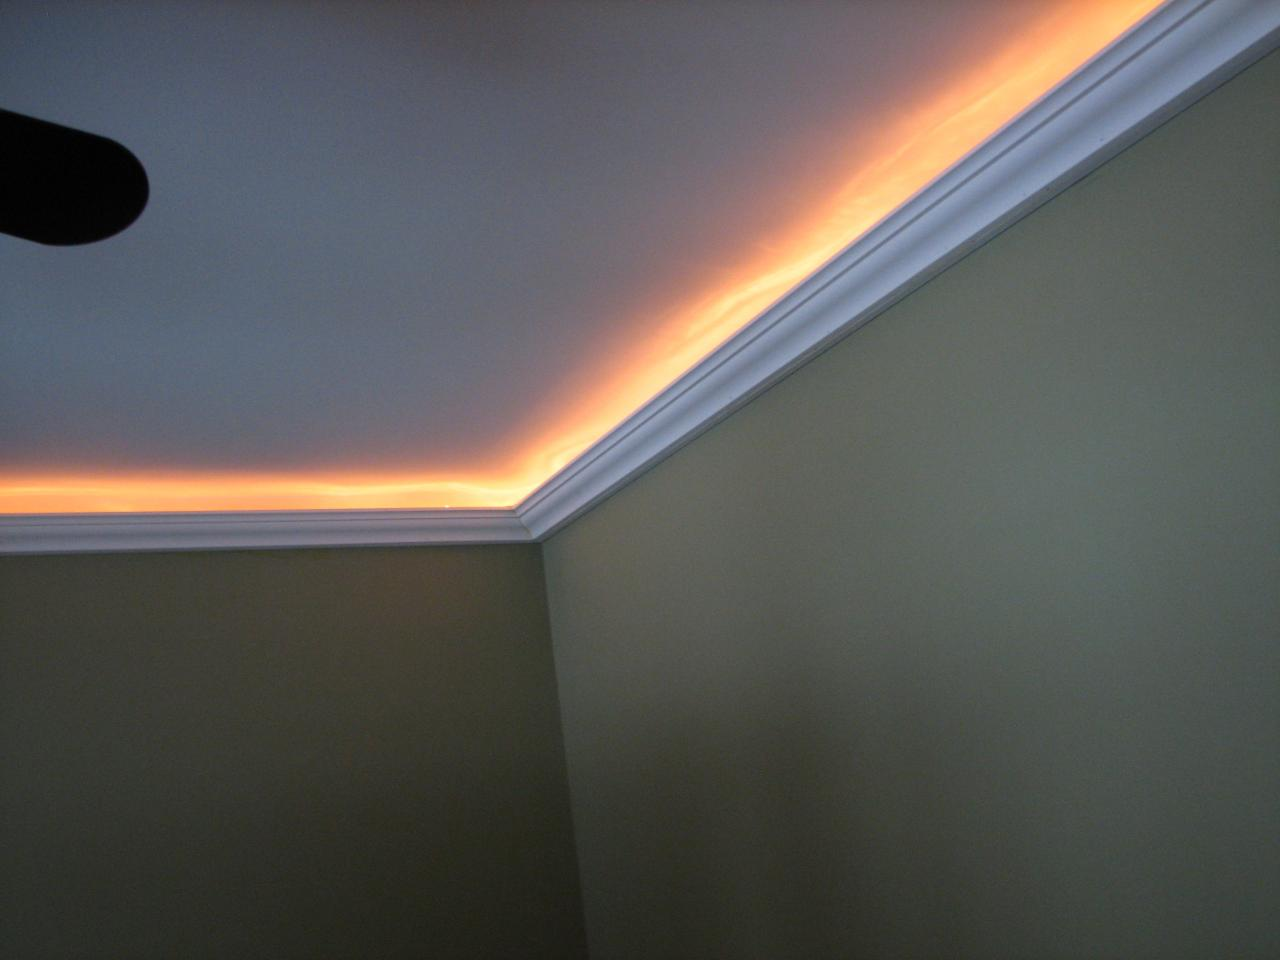 crown moulding lighting. Tips On Installing Crown Molding Lighting Moulding F